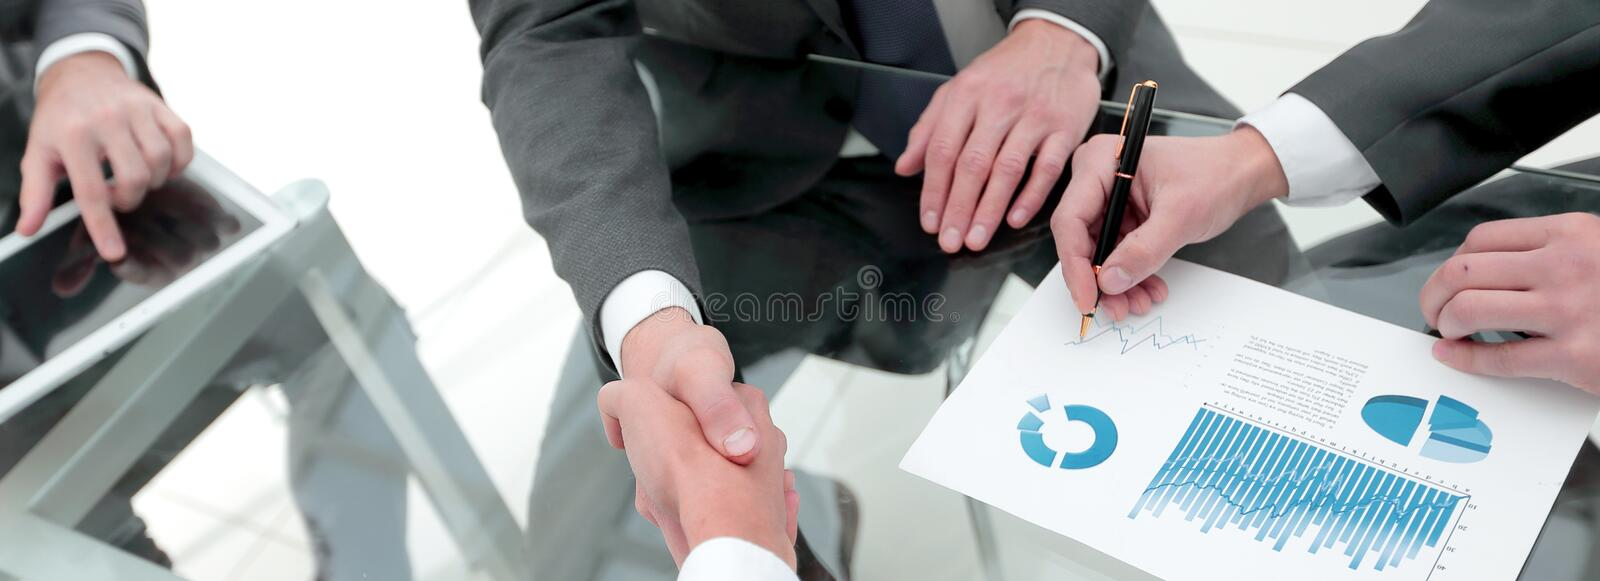 Handshake of financial partners at the Desk stock photography